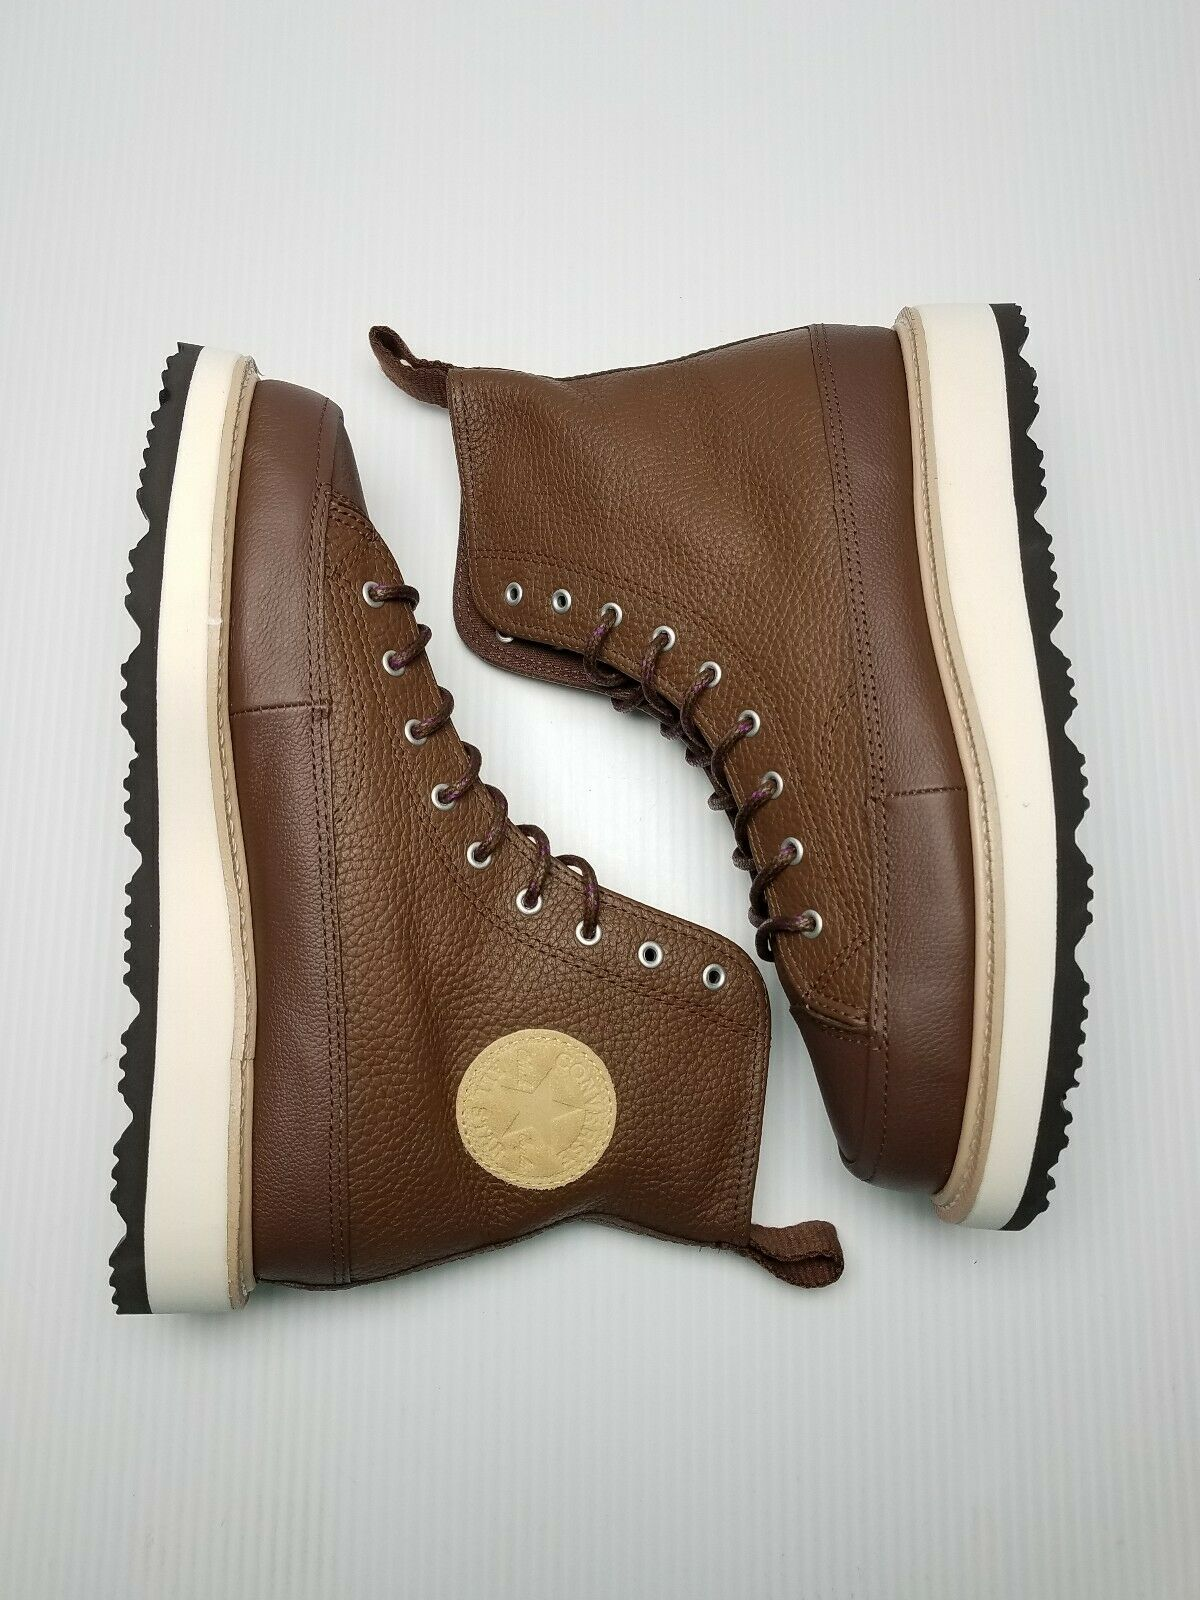 Converse CT Crafted Boot HI Men Size 8.5 Chocolate Leather 162354C Chuck Taylor